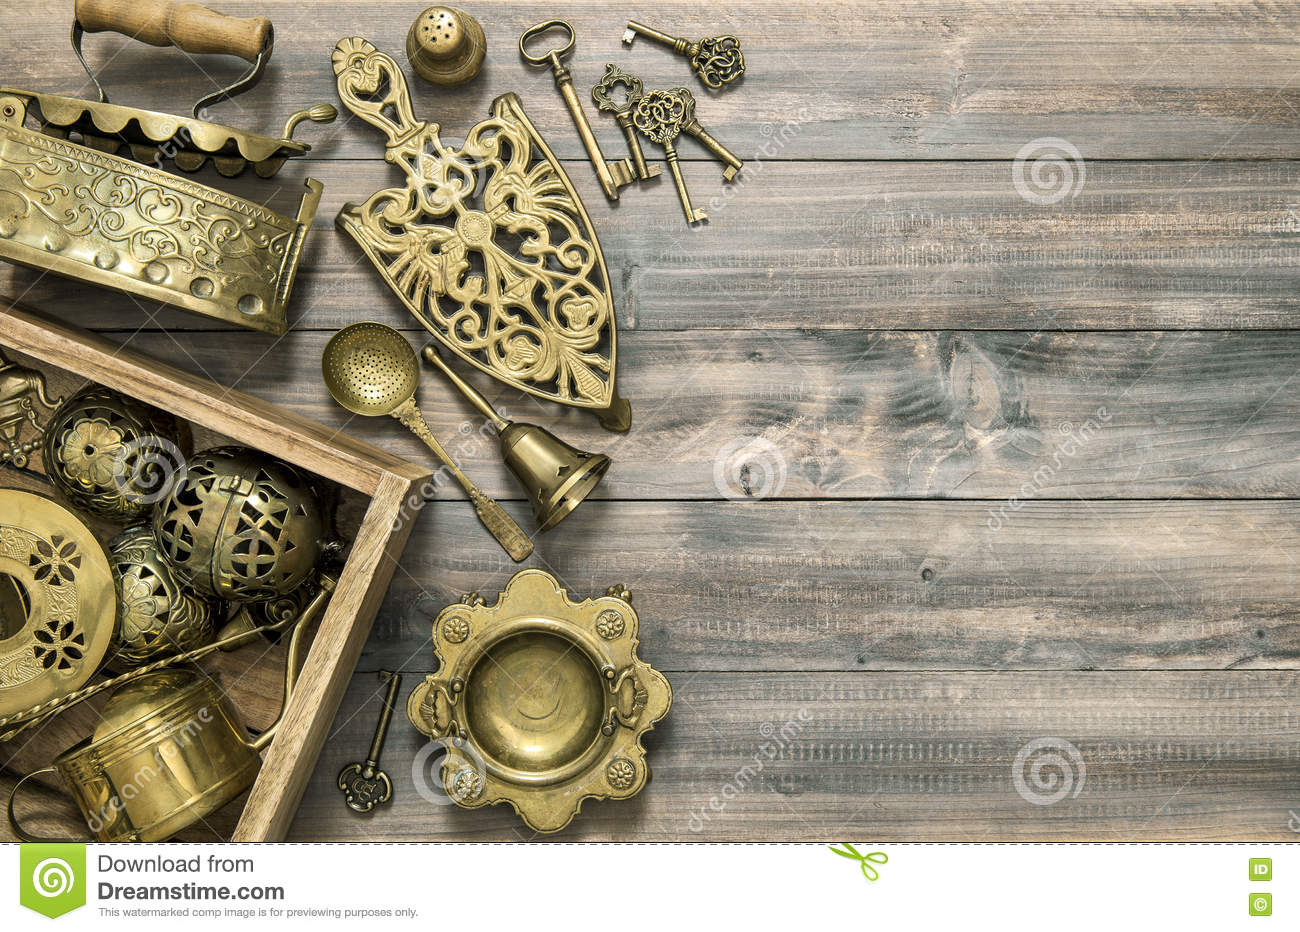 Brass Utensils Royalty Free Stock Photography